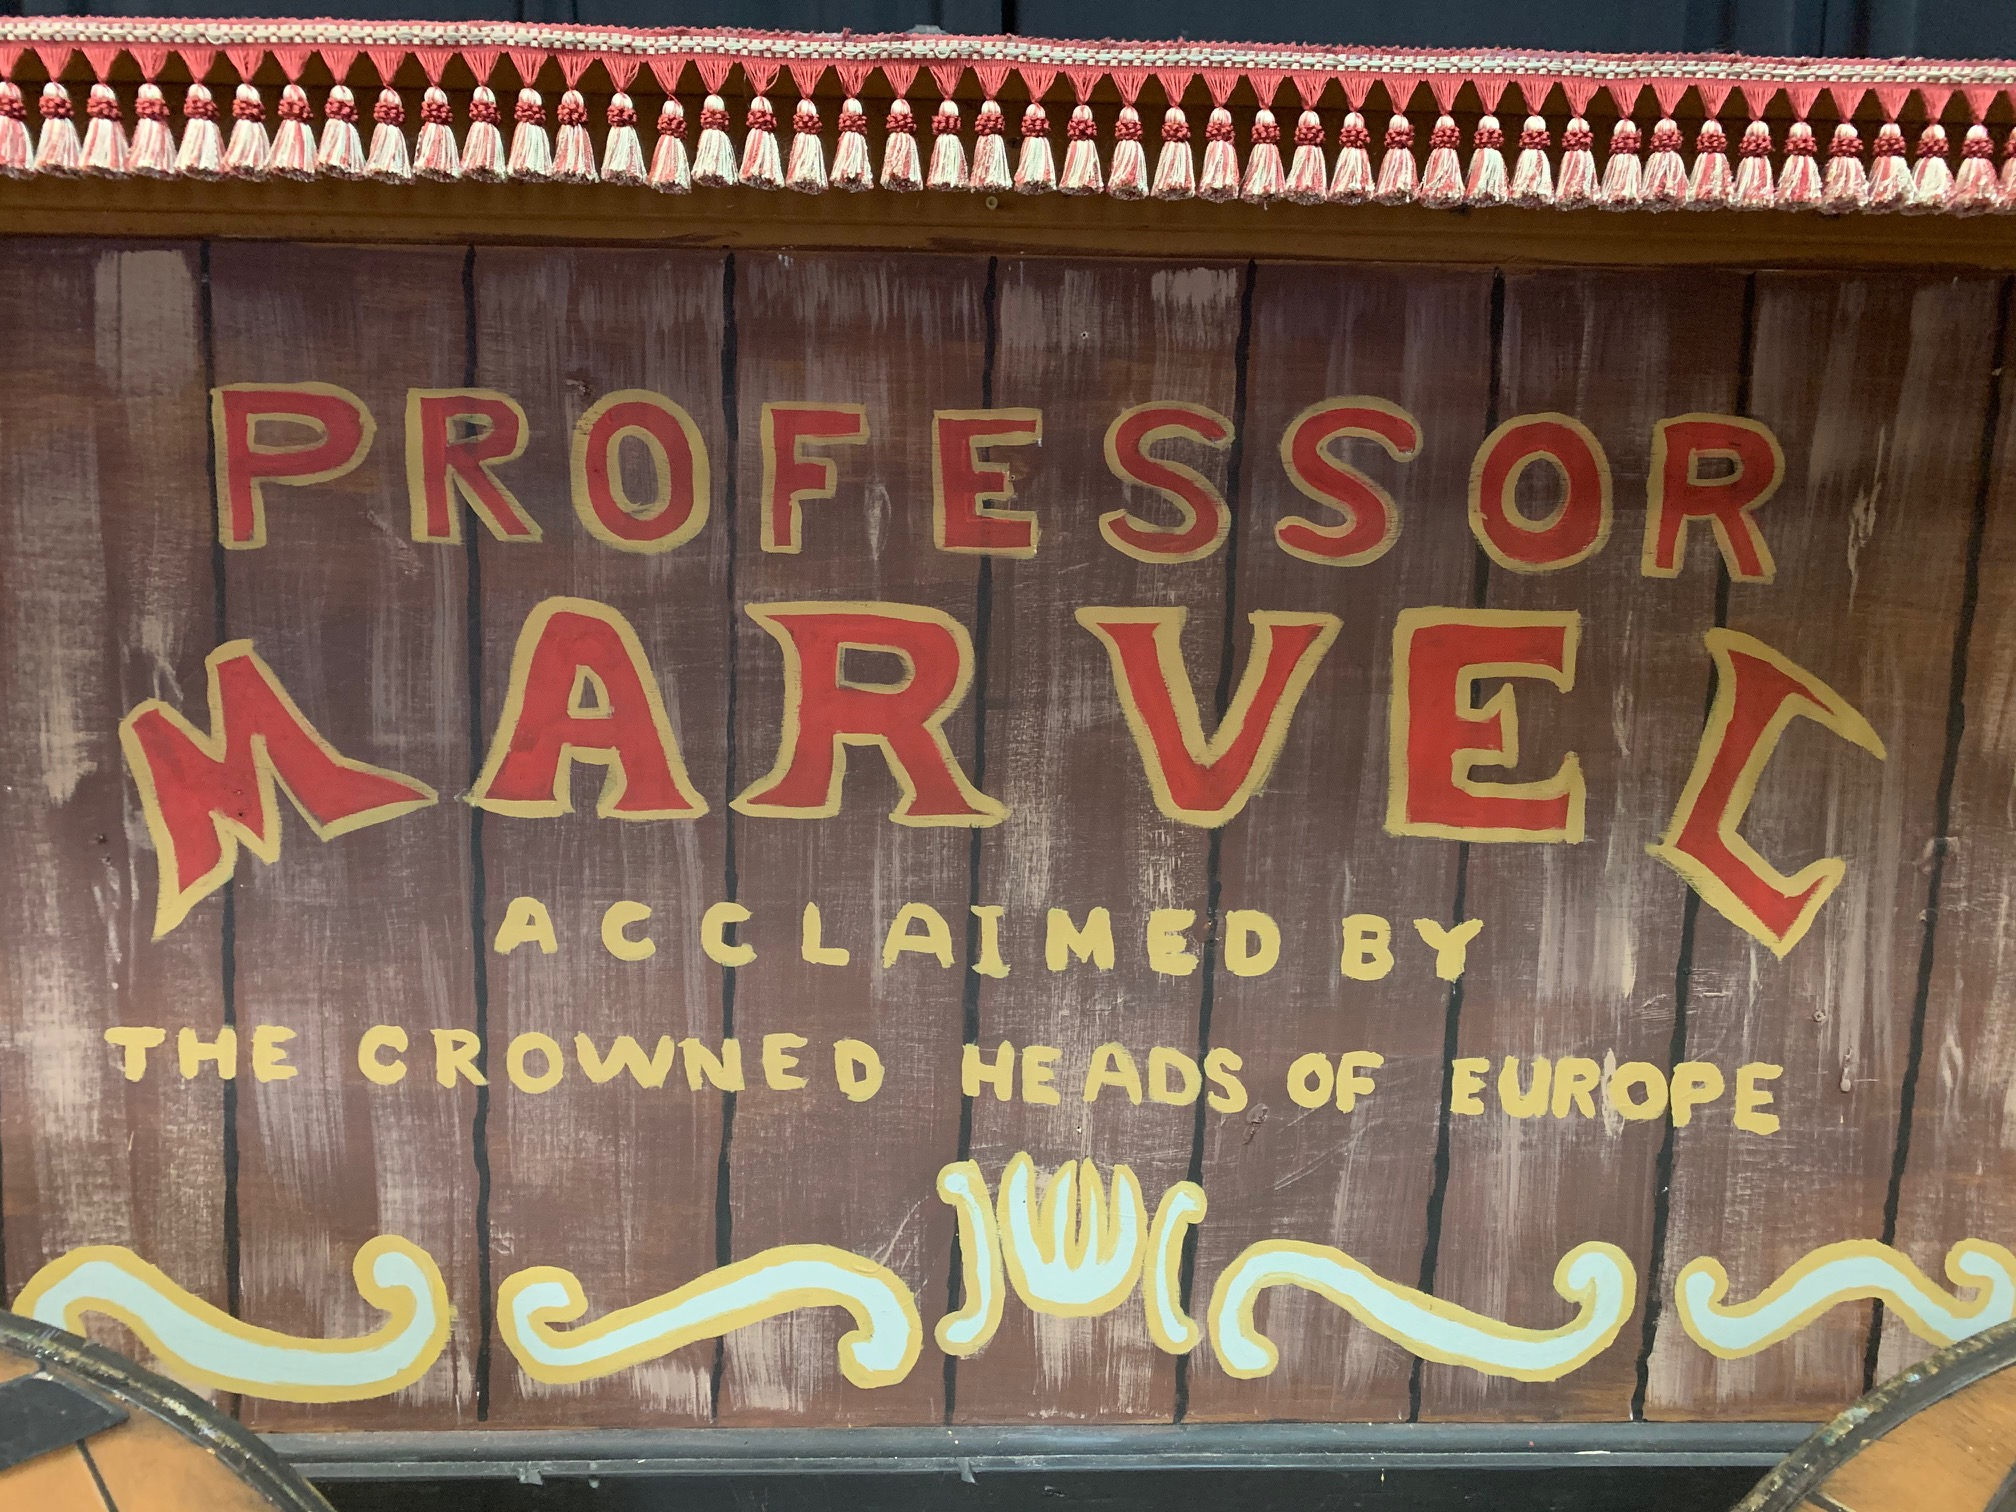 Professor Marvel's Wagon